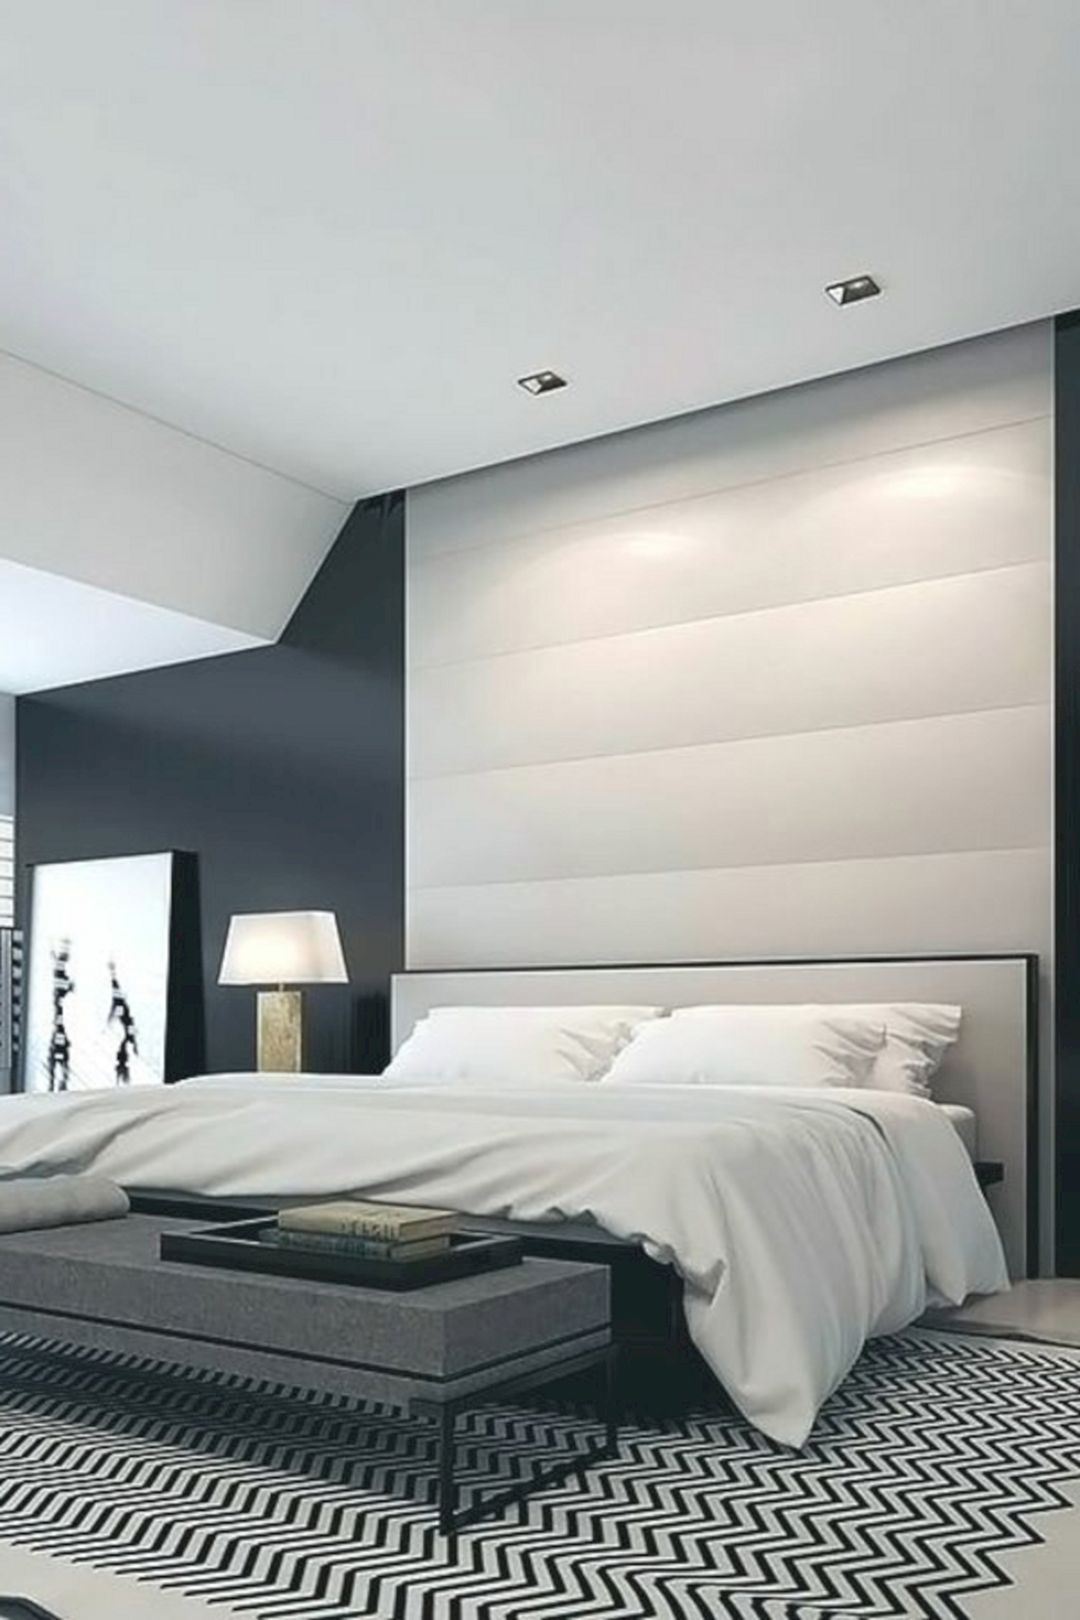 12 Minimalist Bedroom Design Ideas For Cozy Bedroom ...